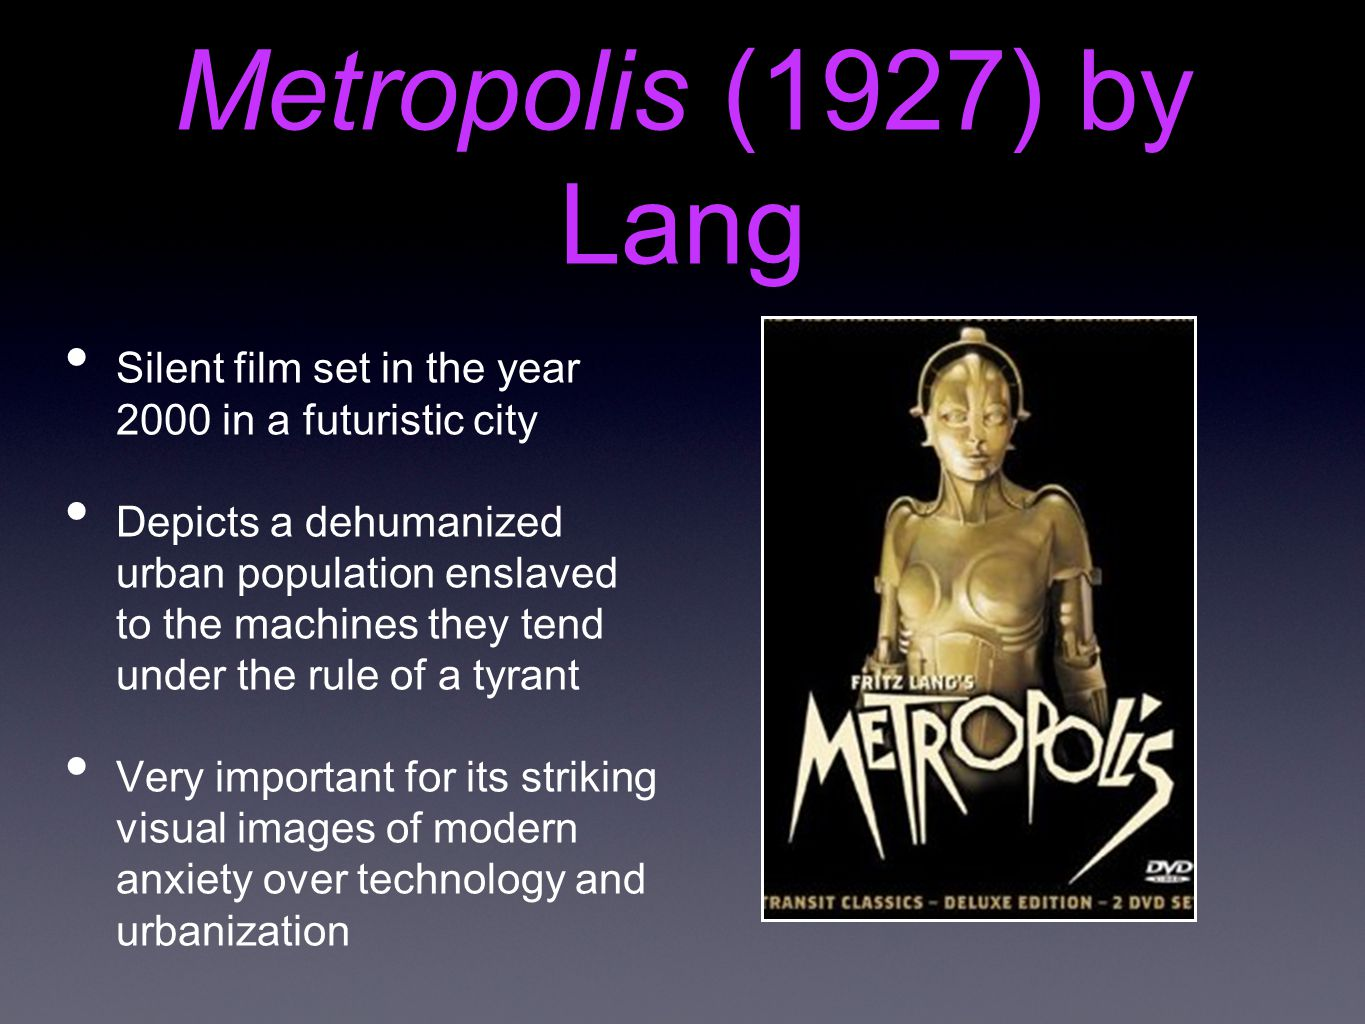 Metropolis (1927) by Lang Silent film set in the year 2000 in a futuristic city Depicts a dehumanized urban population enslaved to the machines they tend under the rule of a tyrant Very important for its striking visual images of modern anxiety over technology and urbanization